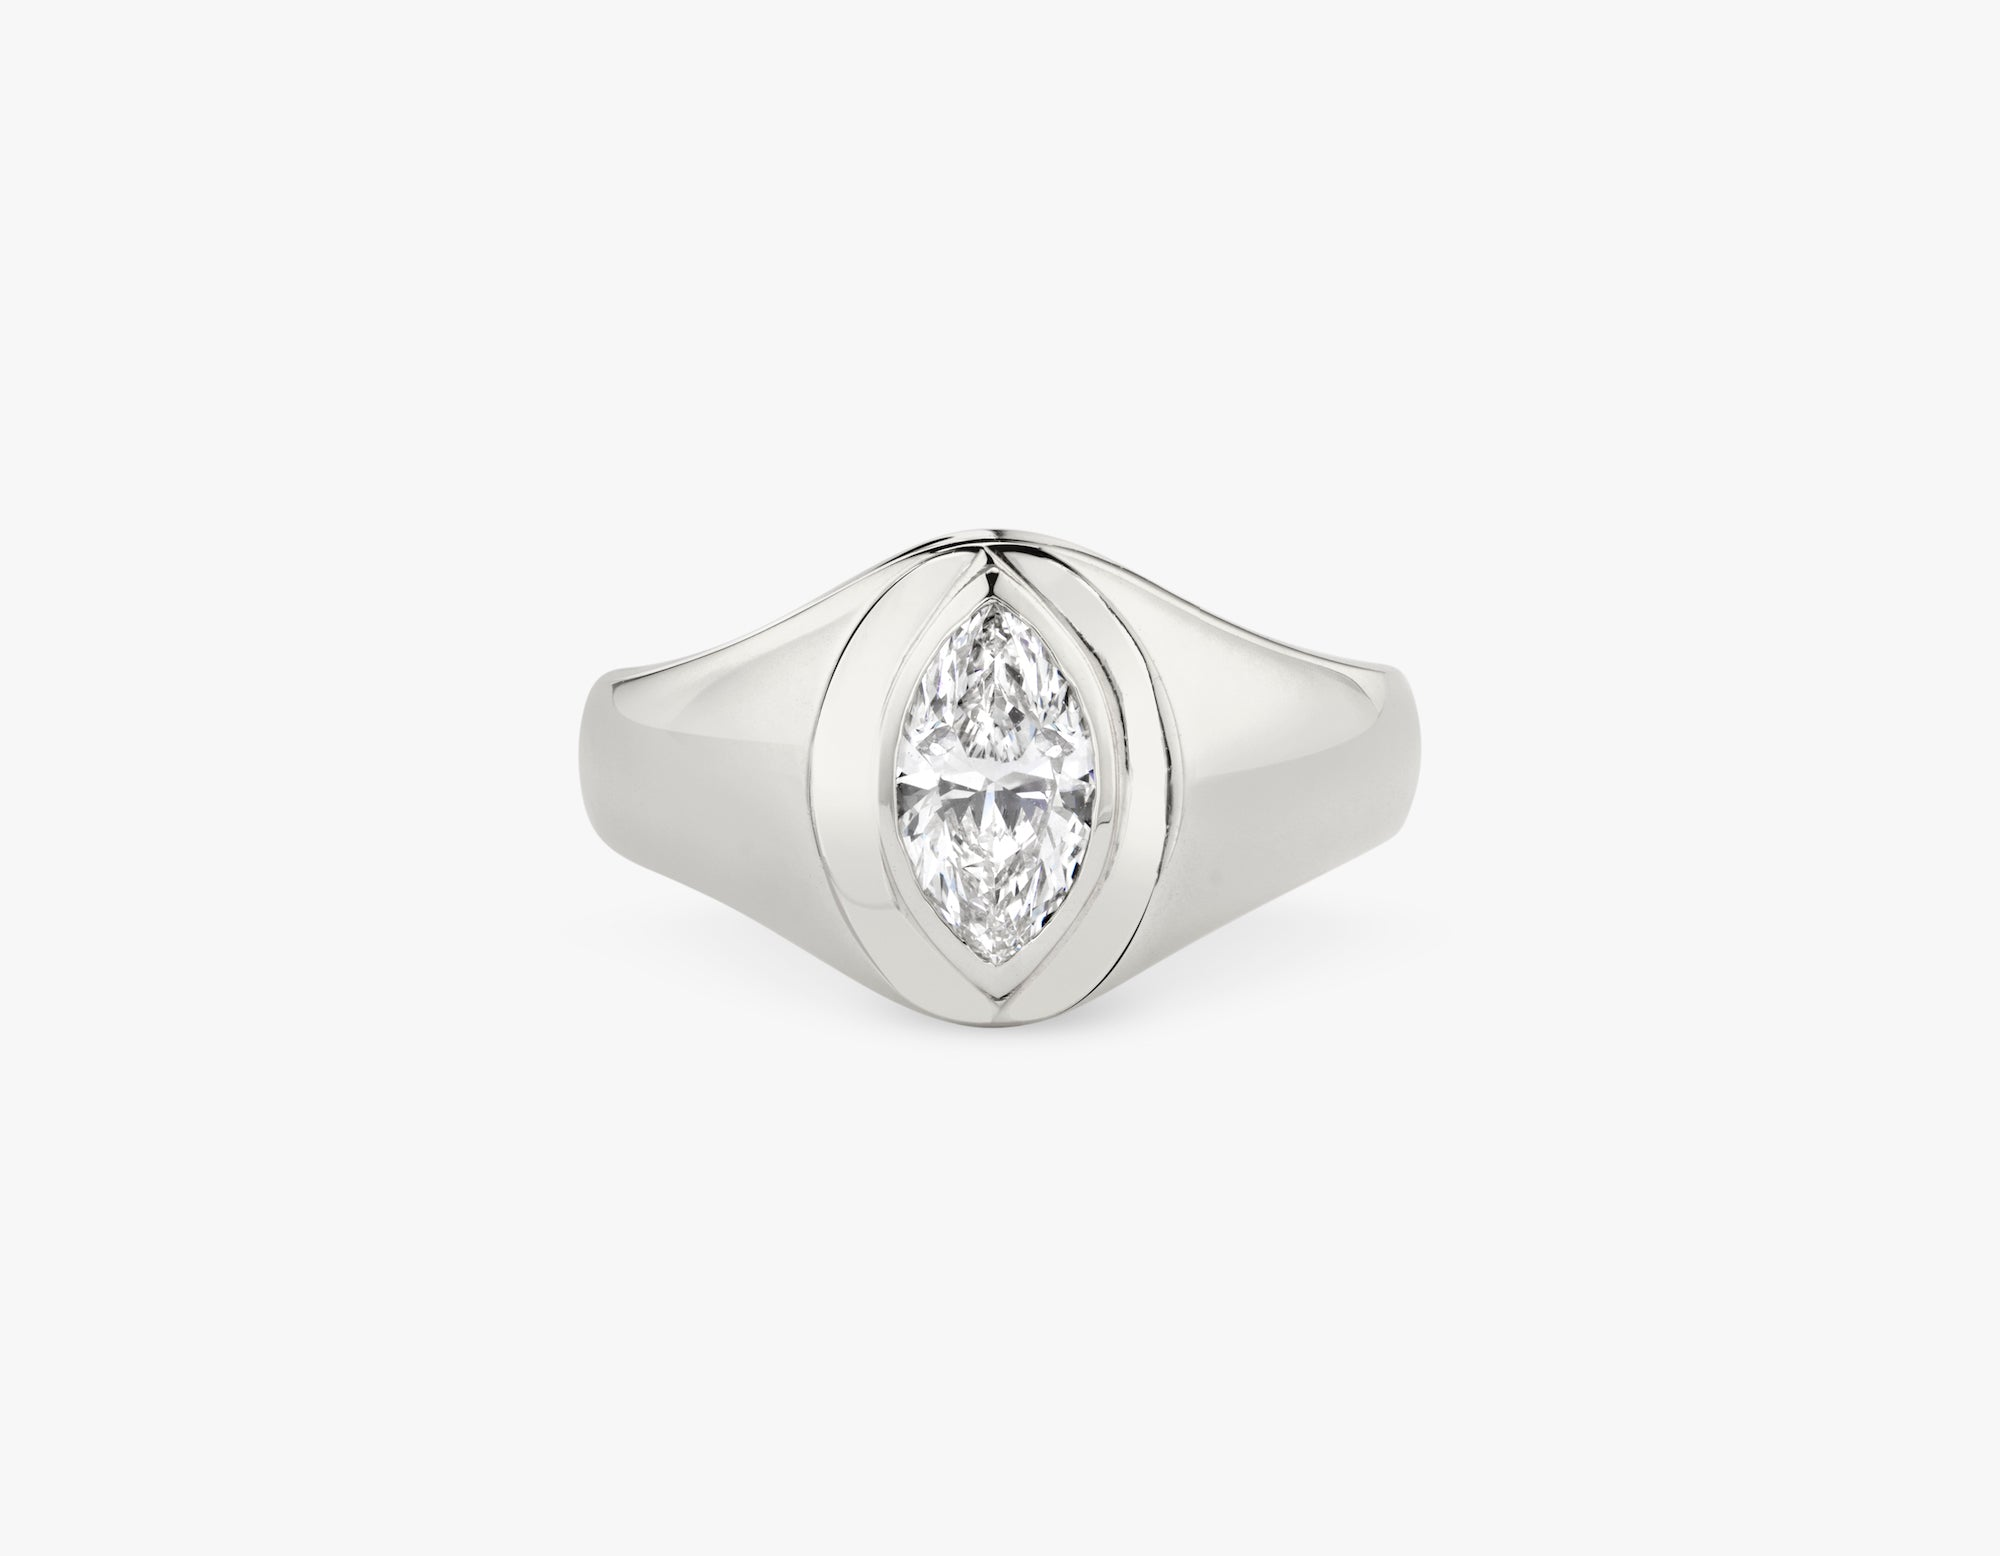 Vrai 14k solid gold classic simple Marquise Diamond Signet Ring, 14K White Gold